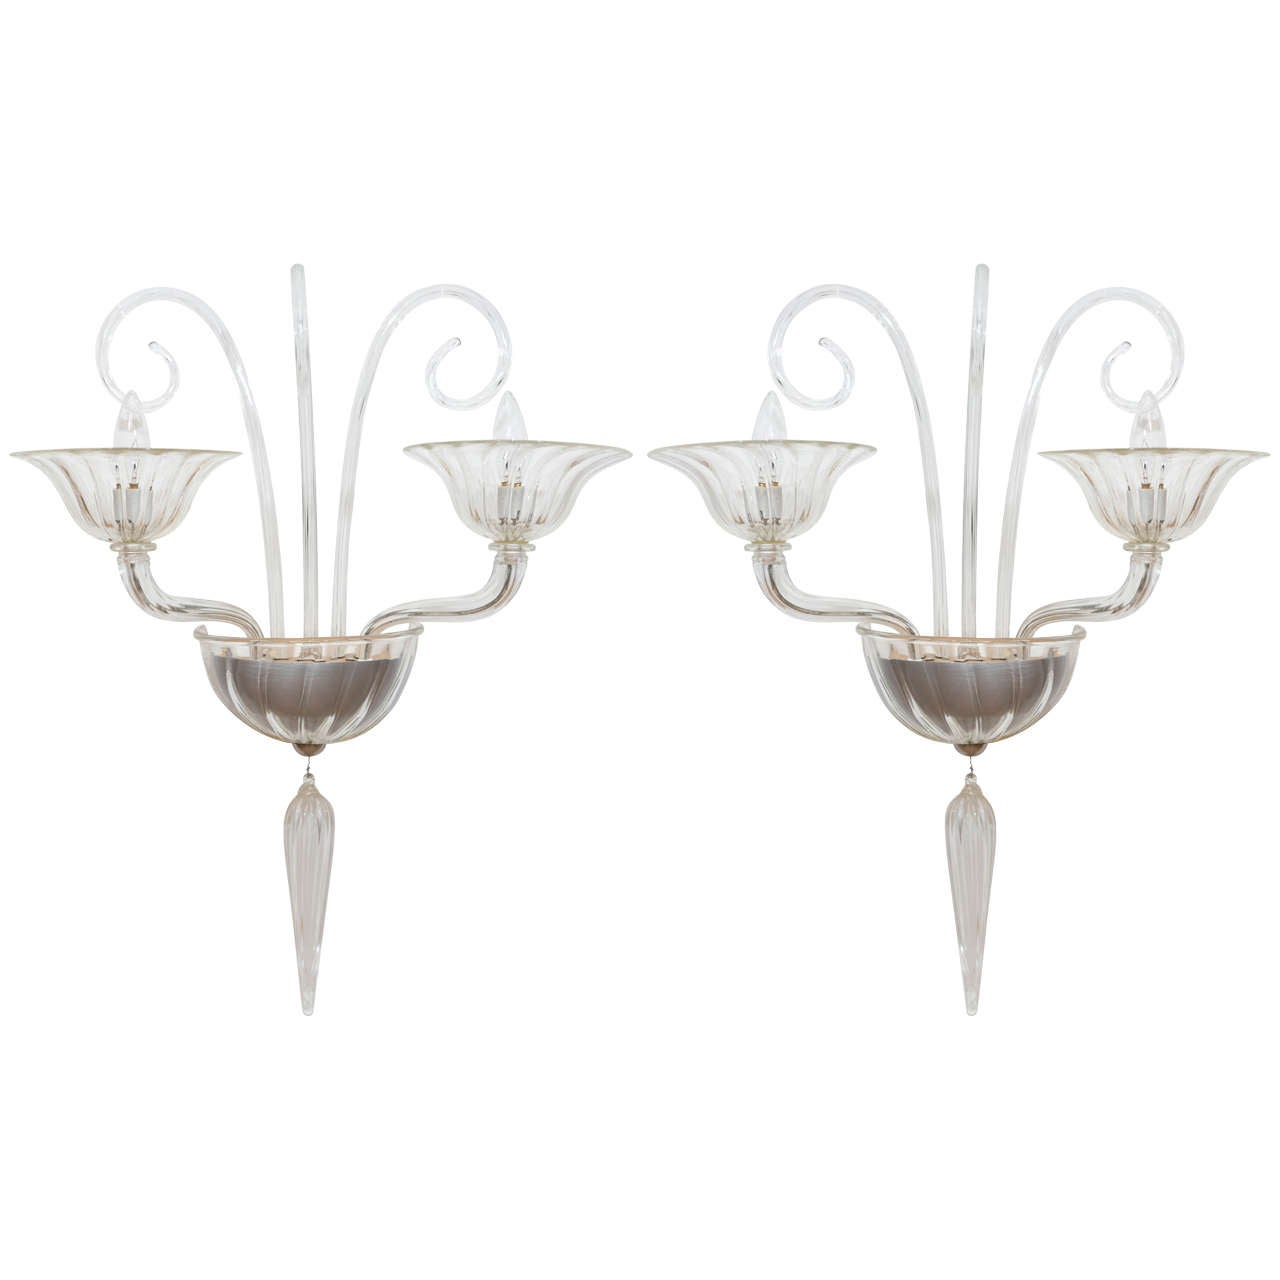 Pair of Murano Glass Wall Sconces Attributed to Mazzega